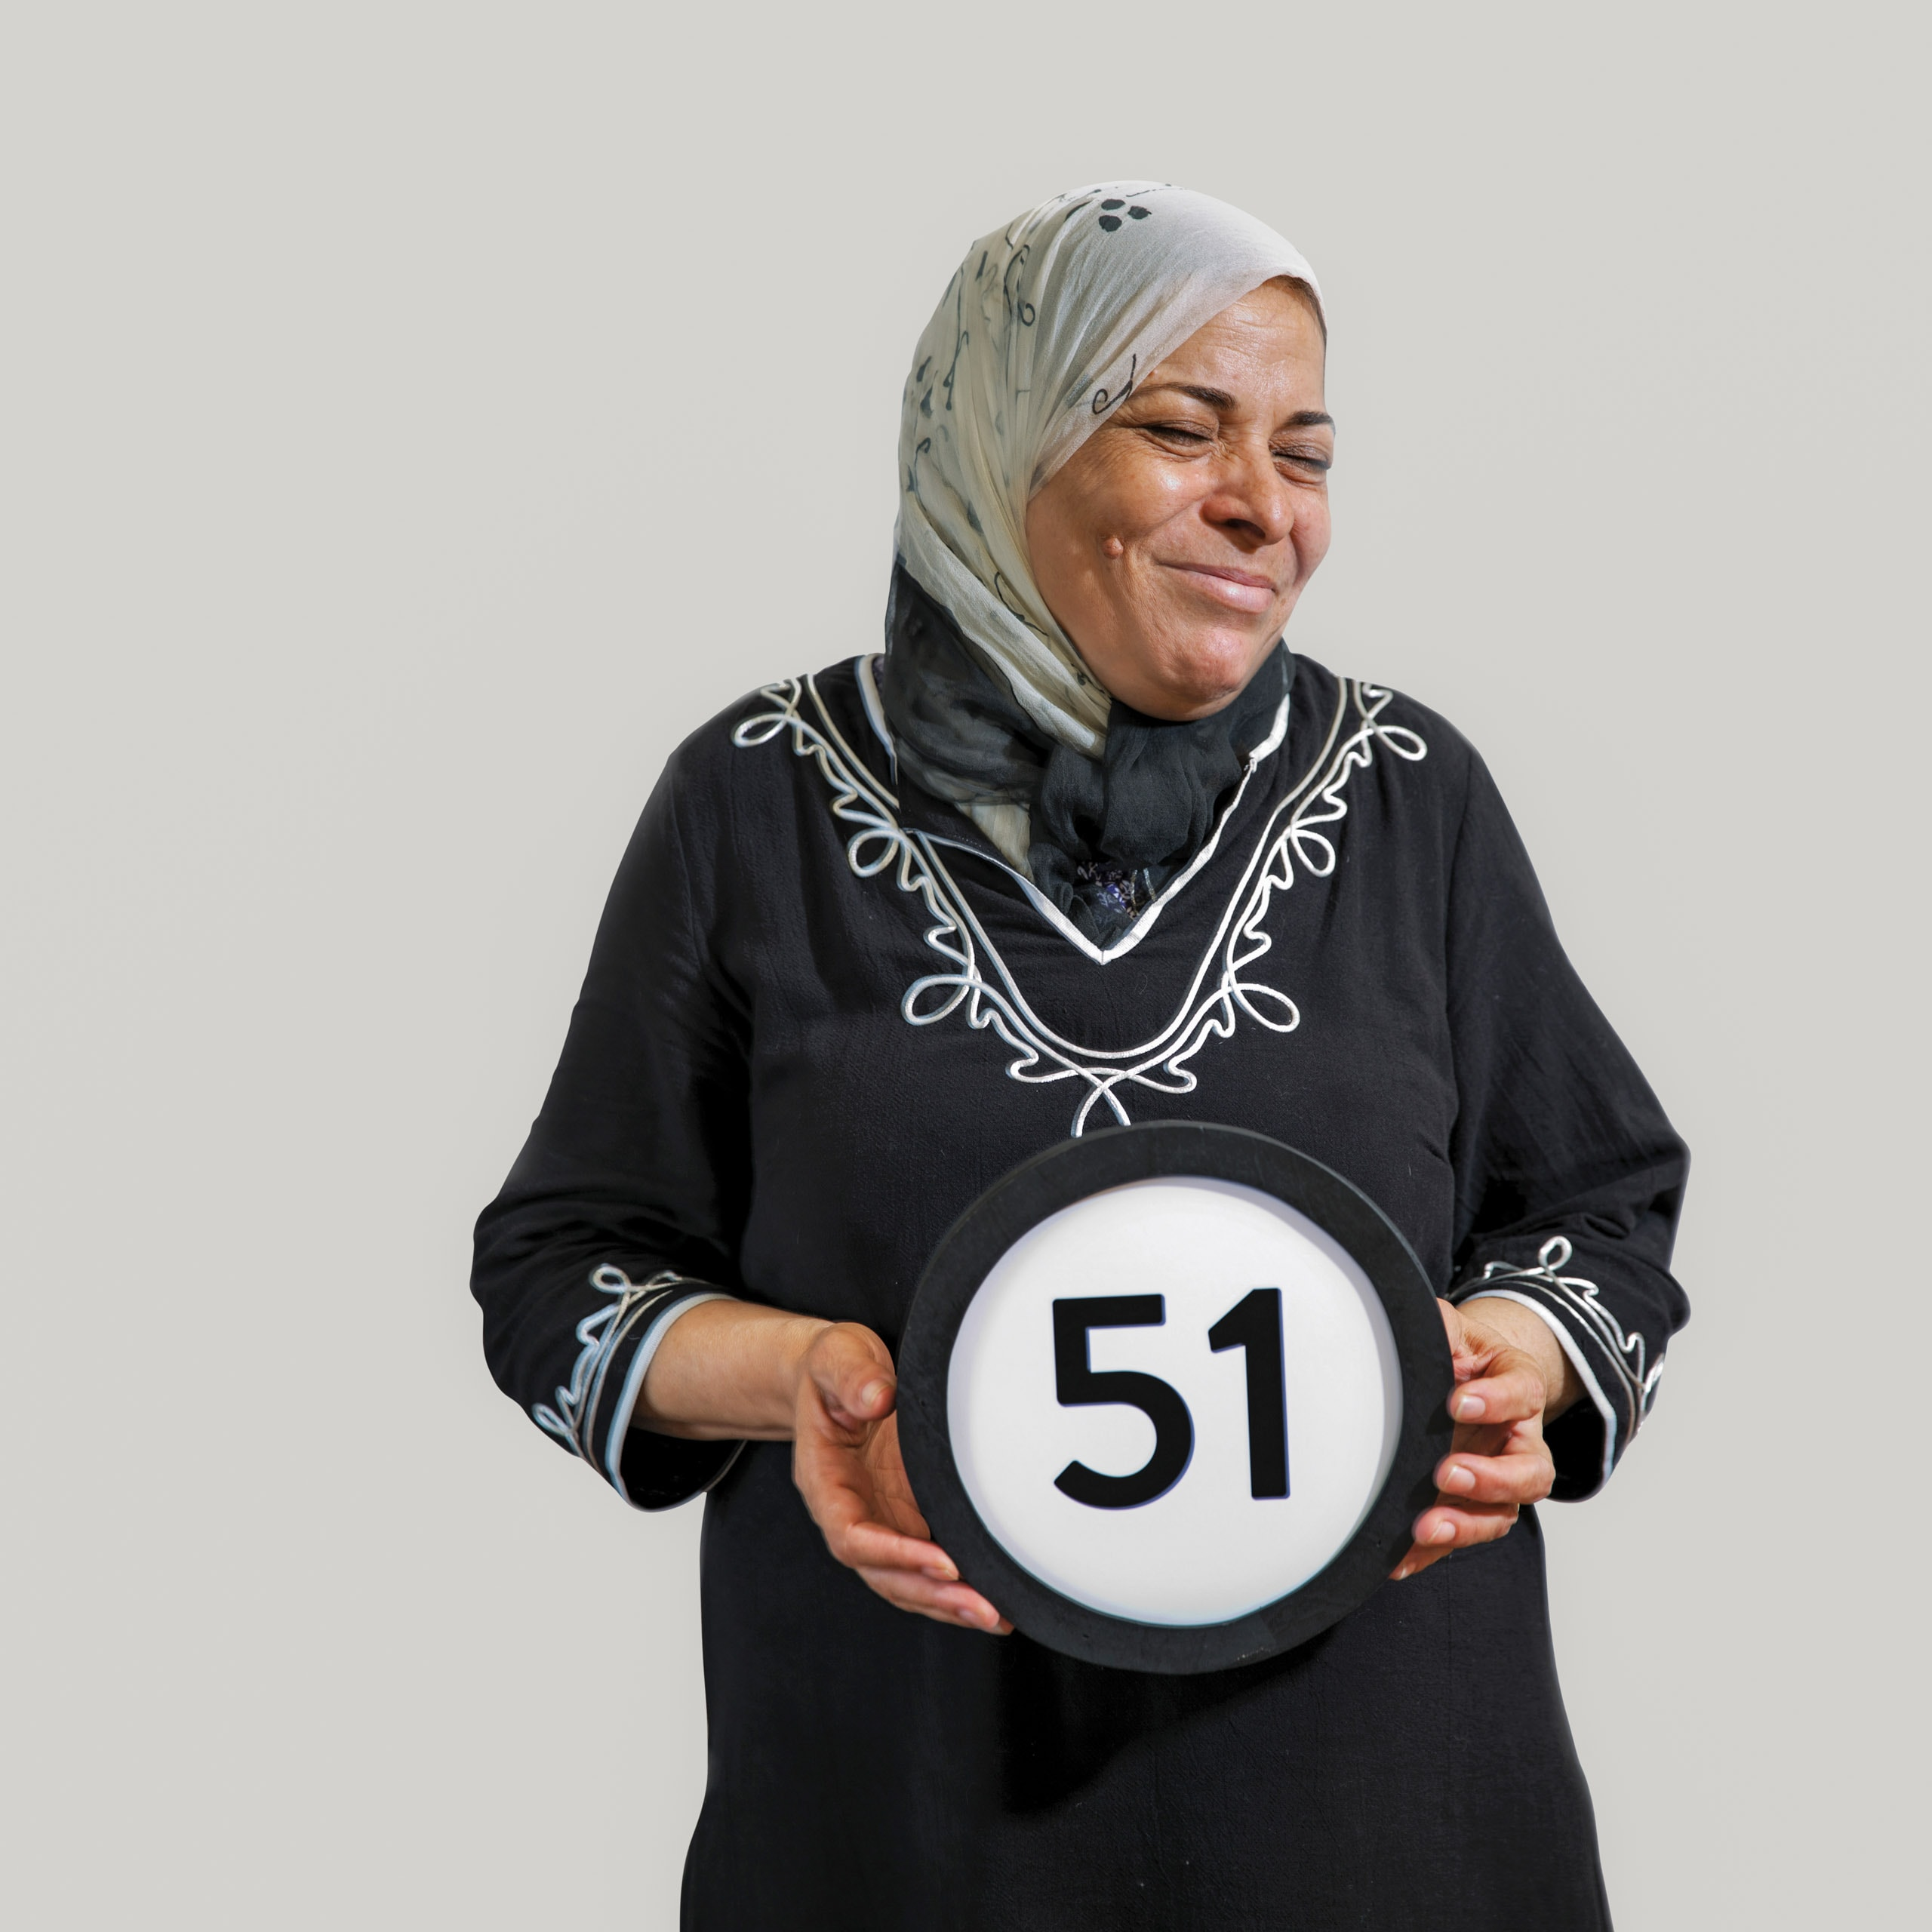 51 year old woman wears a scarf that covers her head and is tied around her neck. Her eyes are closed and she is laughing with her mouth closed. Her black dress has long sleeves and simple curvy embroidery design. She lightly holds a token with the number 51 on it. This digital image is part of the 1 to Infinity portrait photography series by Danny Goldfield.